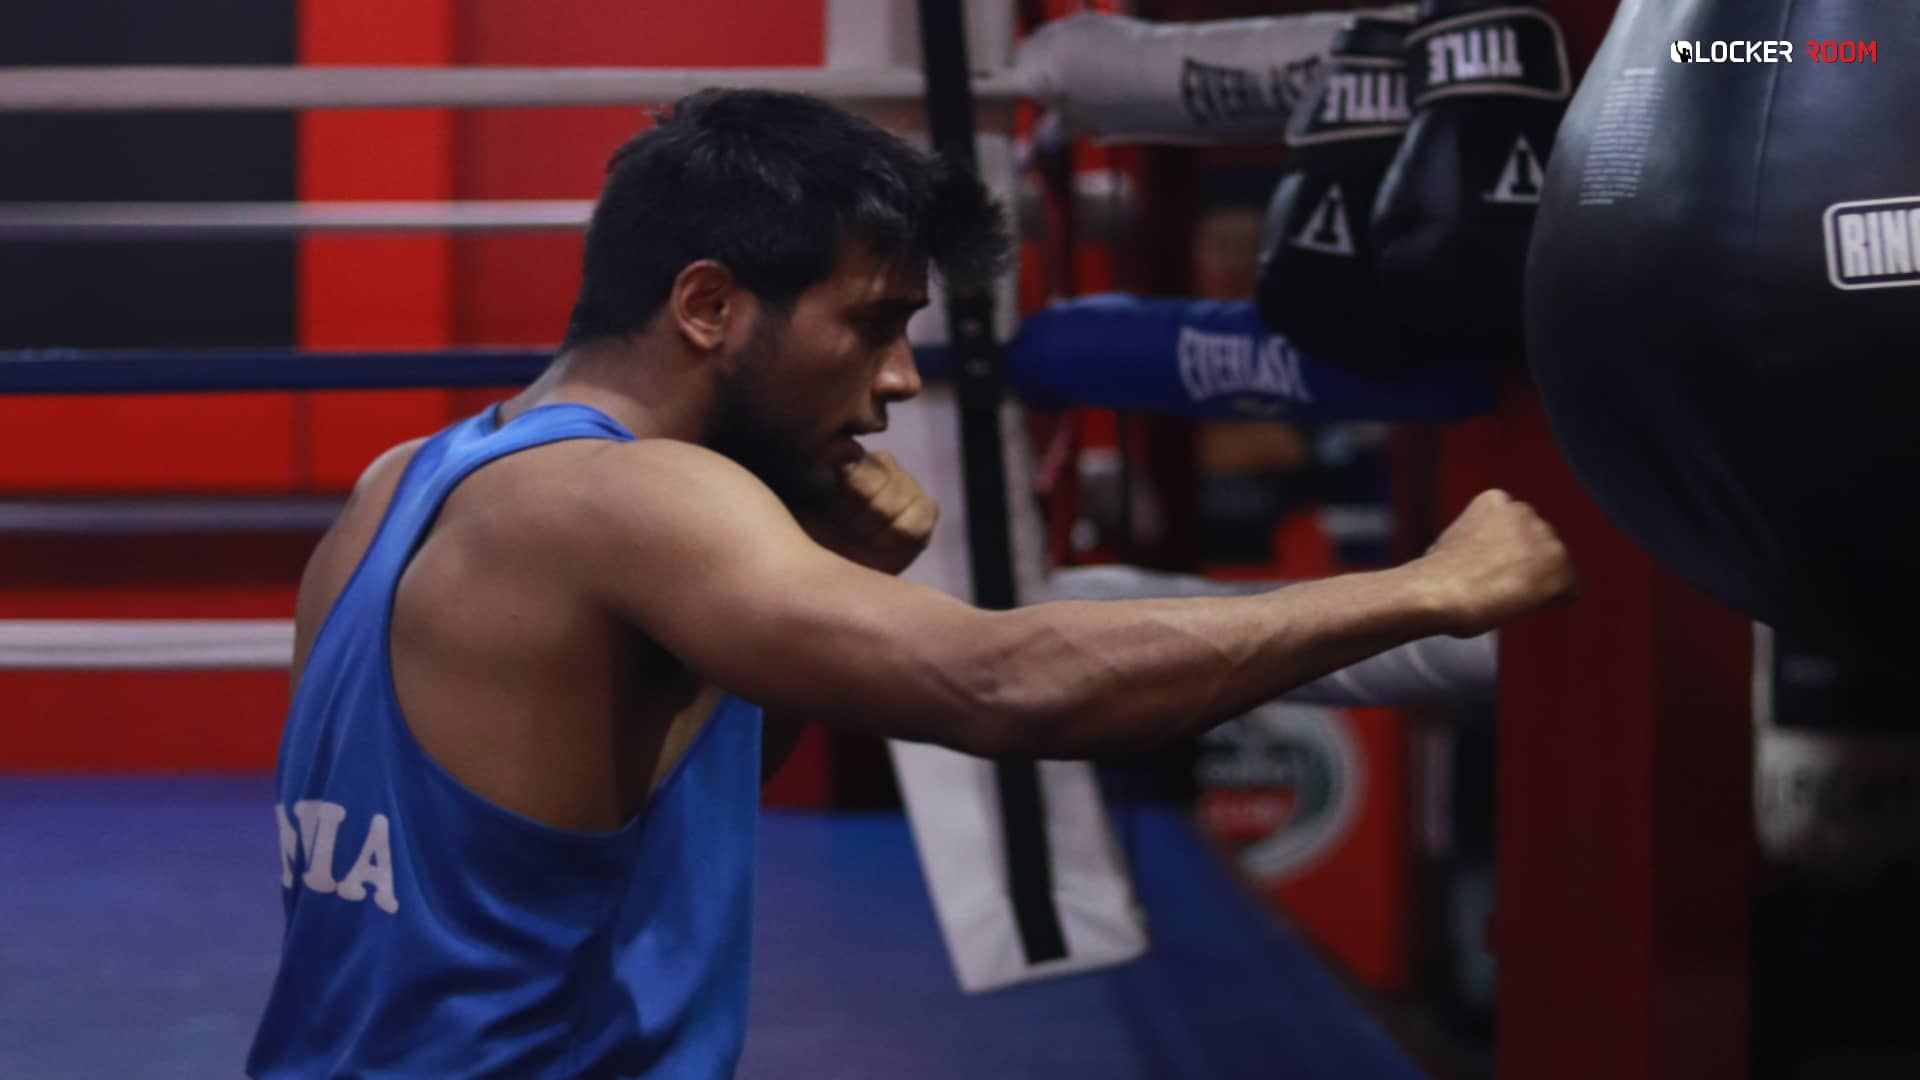 https://lockerroom.in/blog/view/Rana-Rudra-Pratap-Singh-Indian-MMA-Story